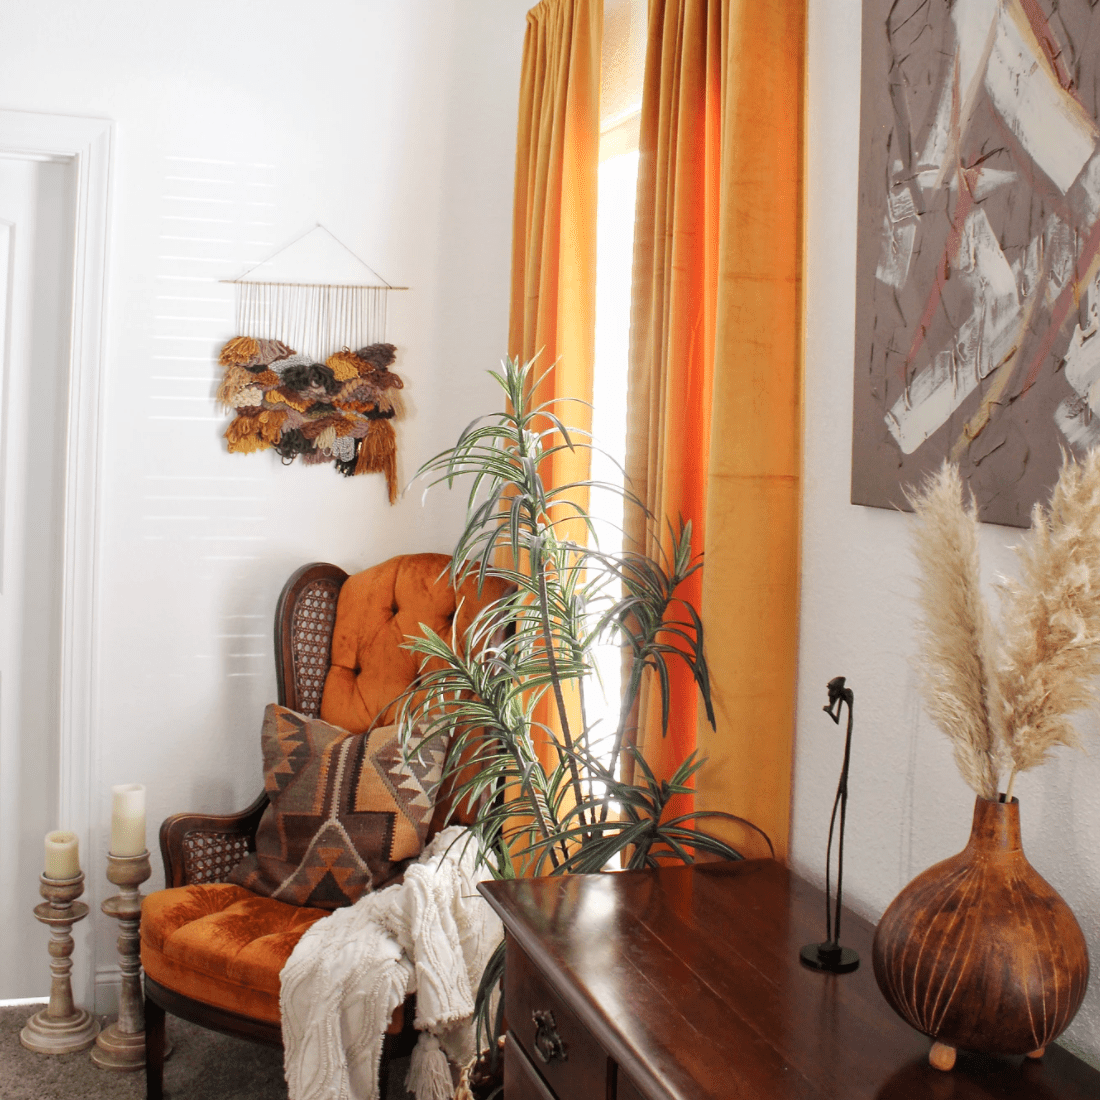 A corner with orange curtains and wood furniture